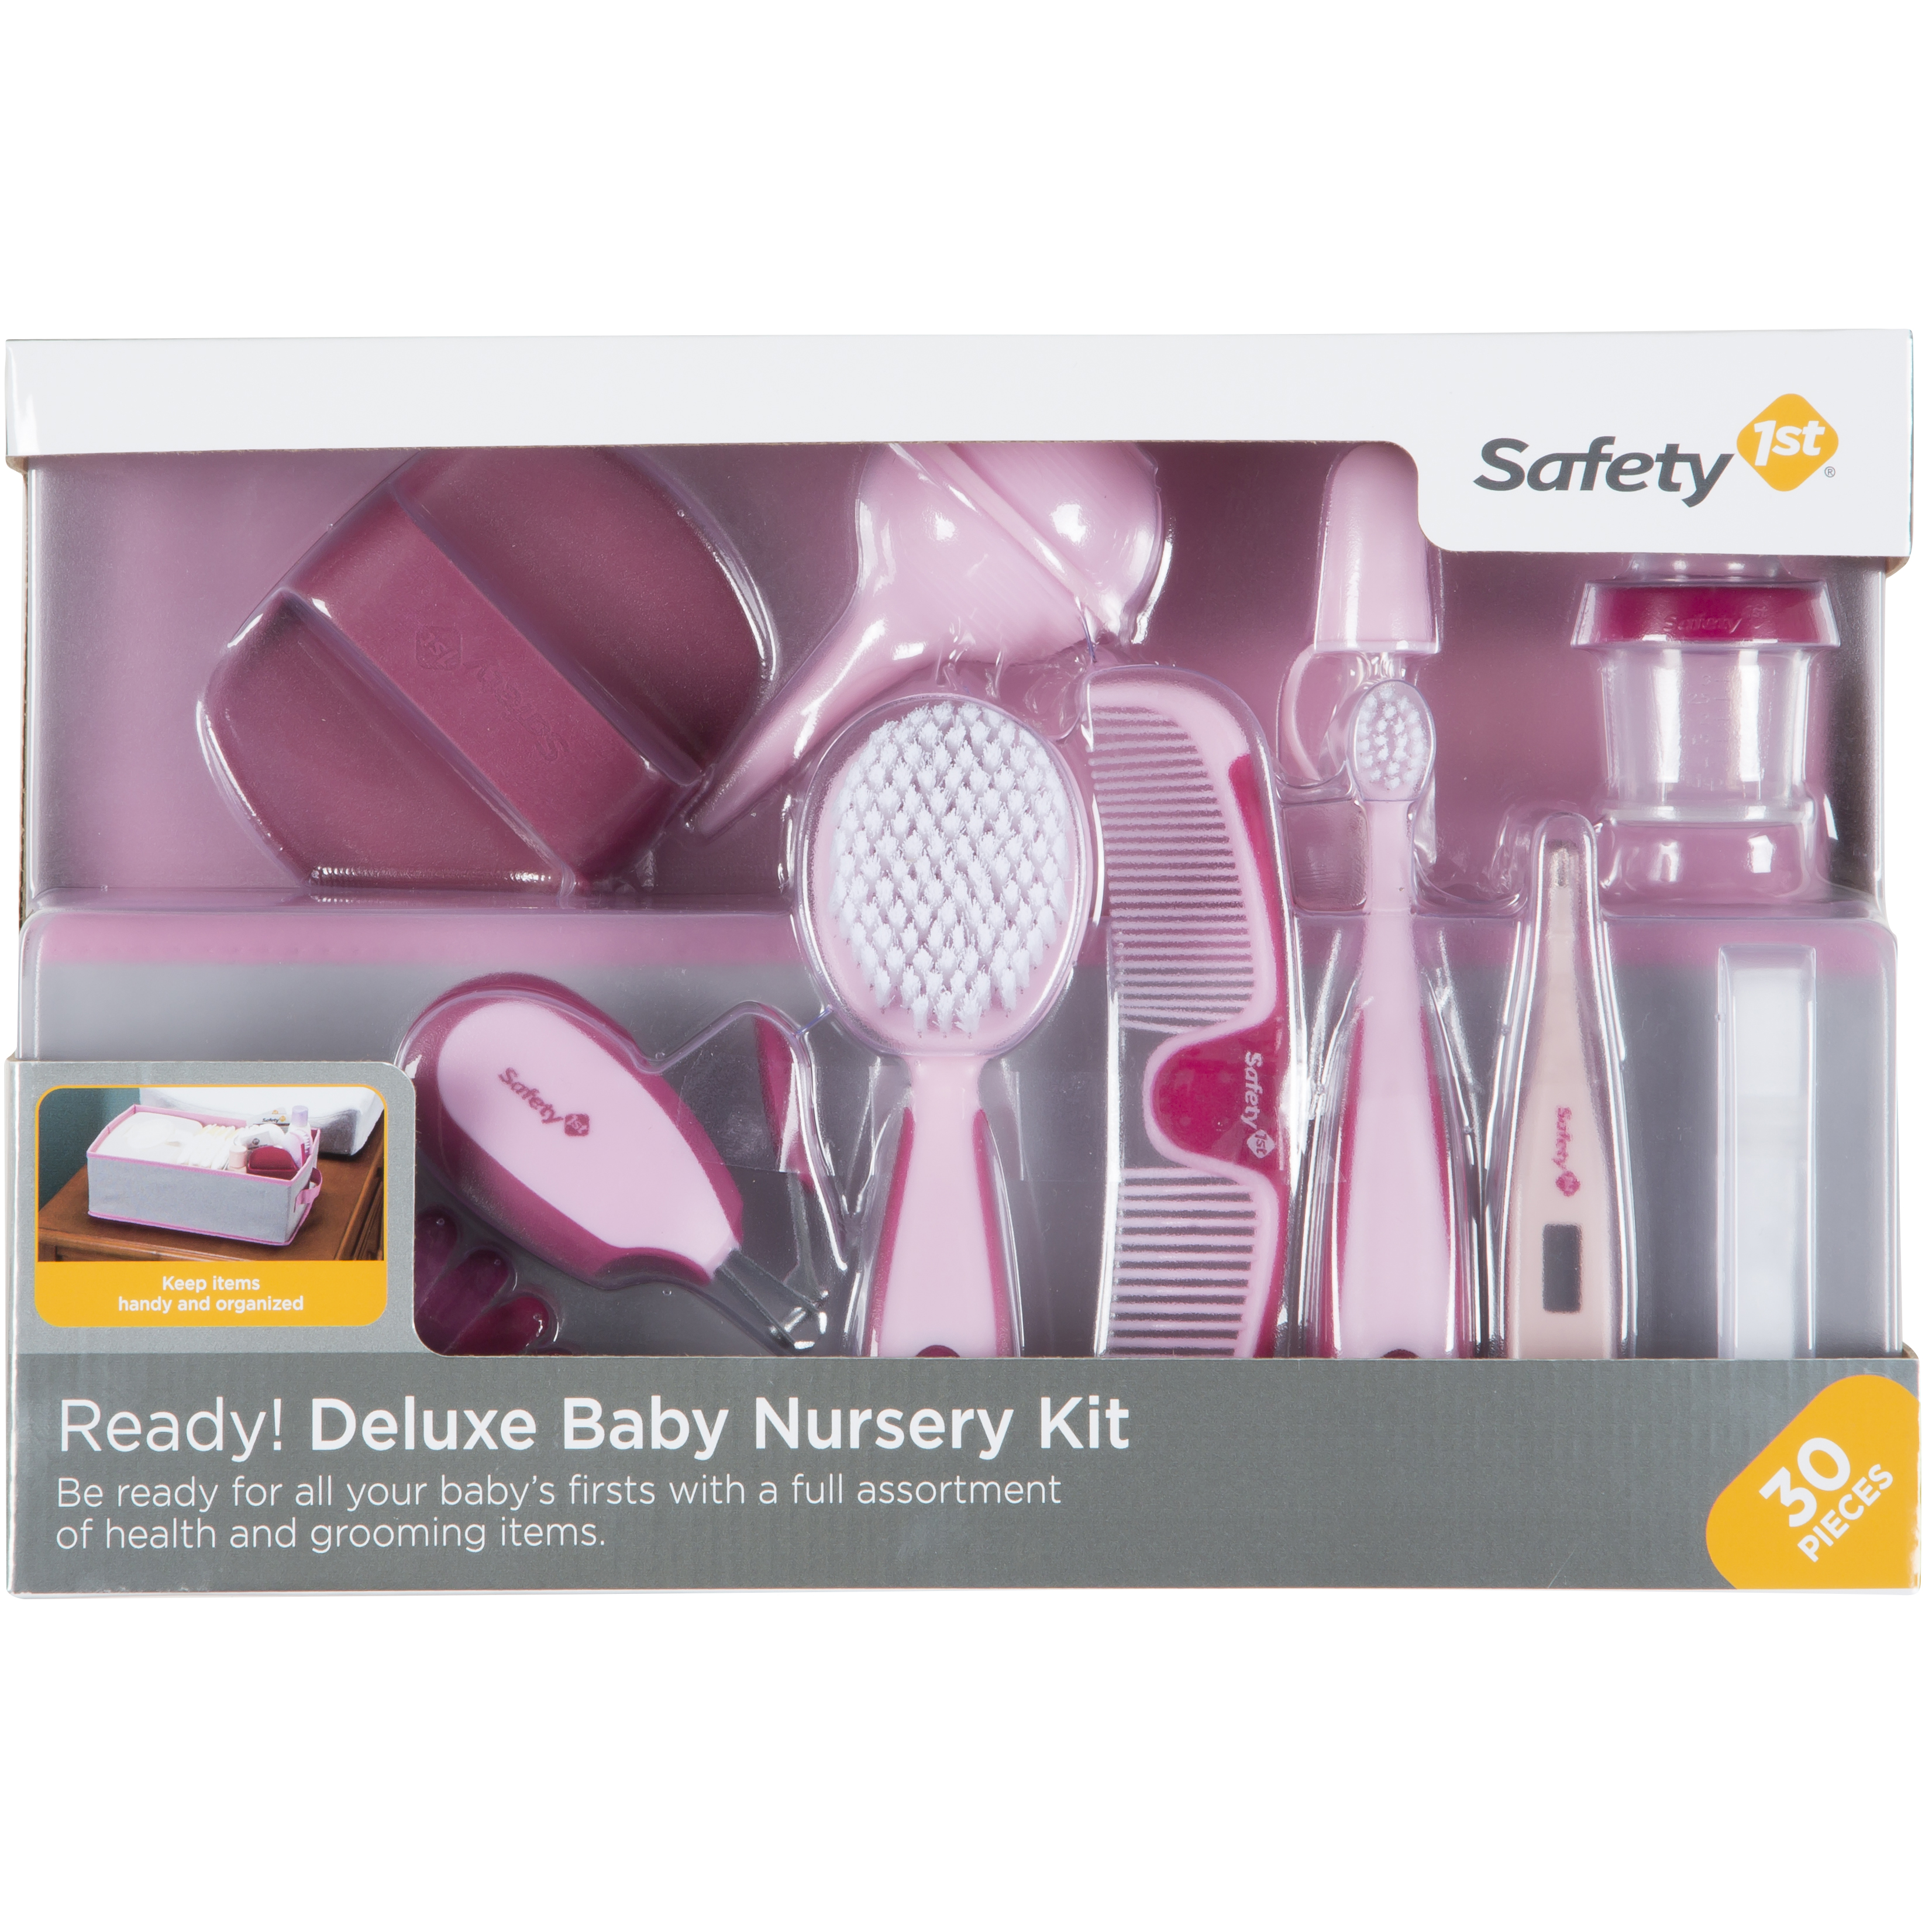 Safety 1�ᵗ Ready! Deluxe Baby Nursery Kit (Raspberry), Pretty In Pink by Safety 1%CB%A2%E1%B5%97%C2%AE